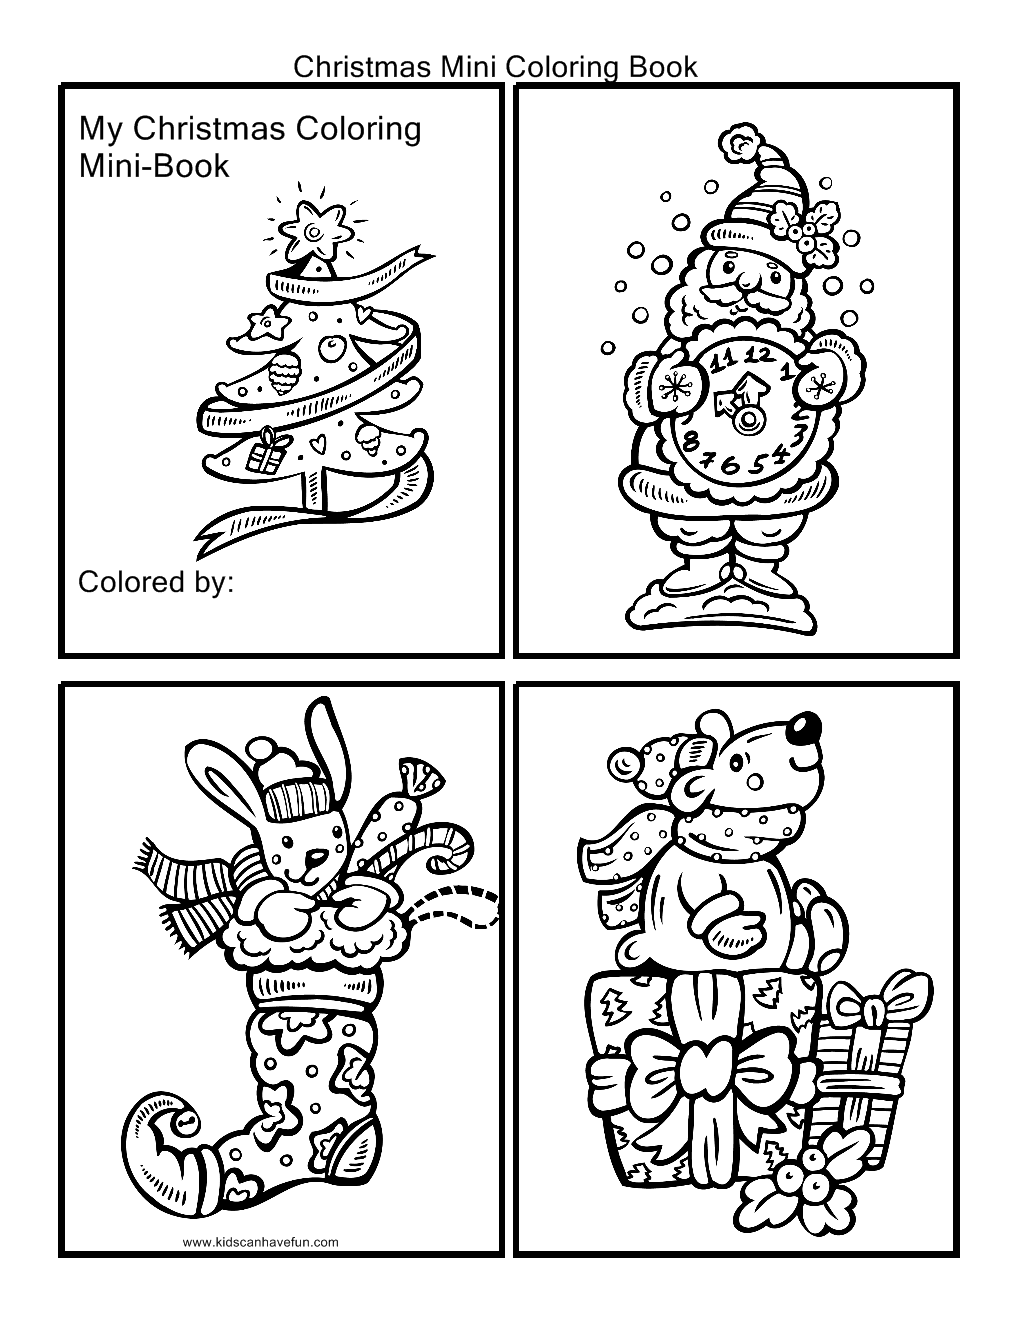 Christmas Mini Coloring Book. Cut out the pictures and staple ...